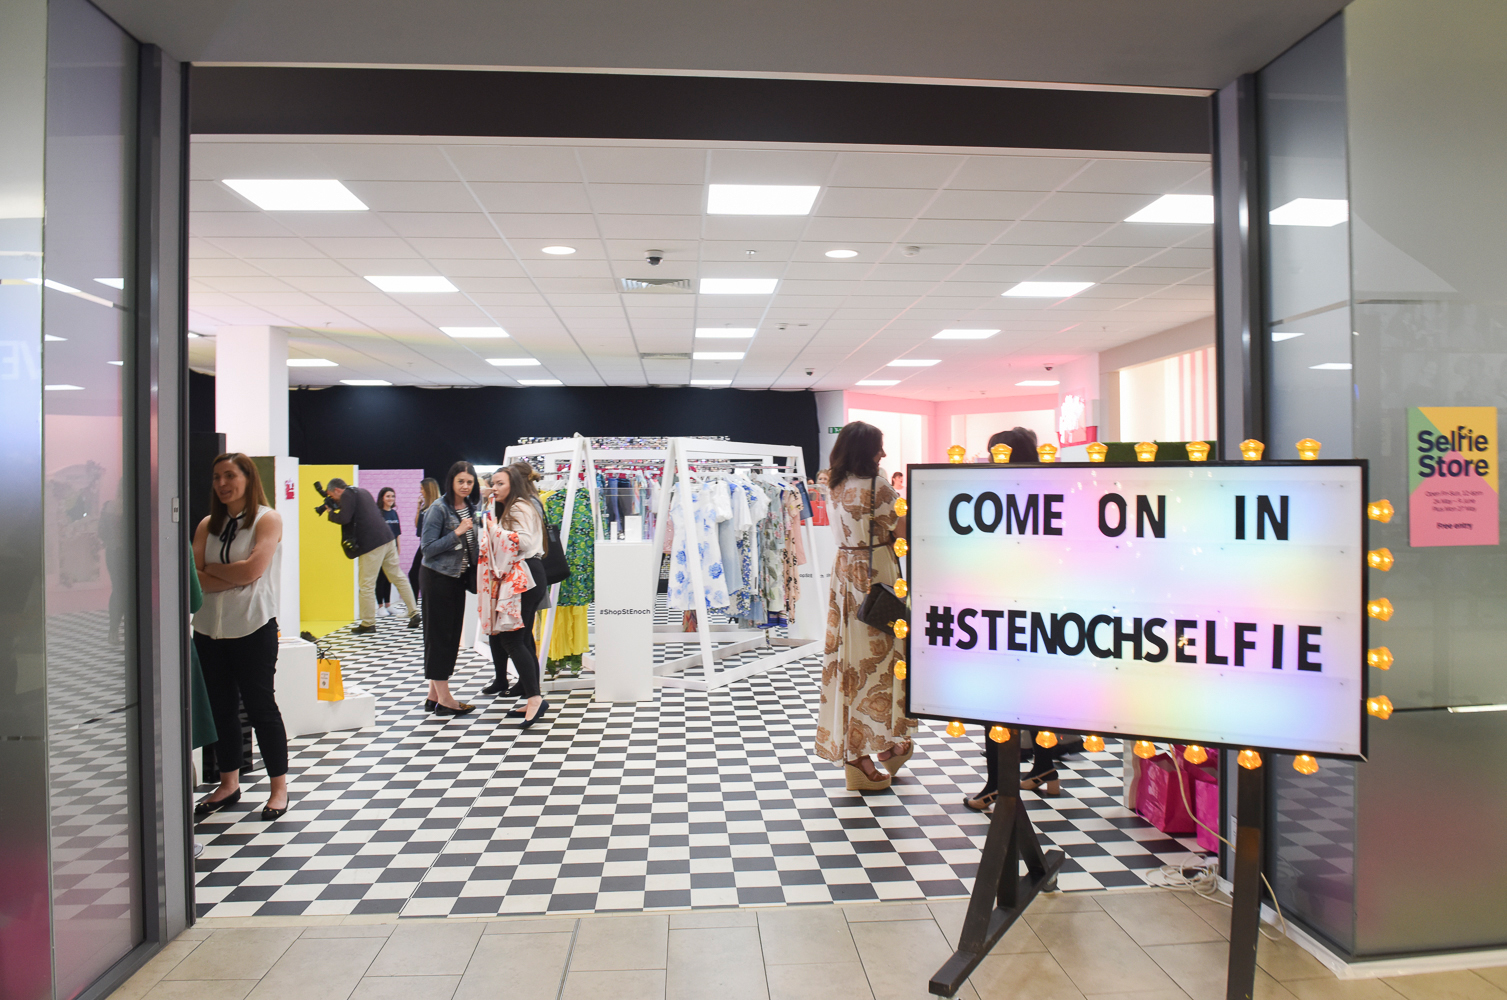 Blogger evening to Celebrate Selfie Store opening and Centre's 30th Birthday